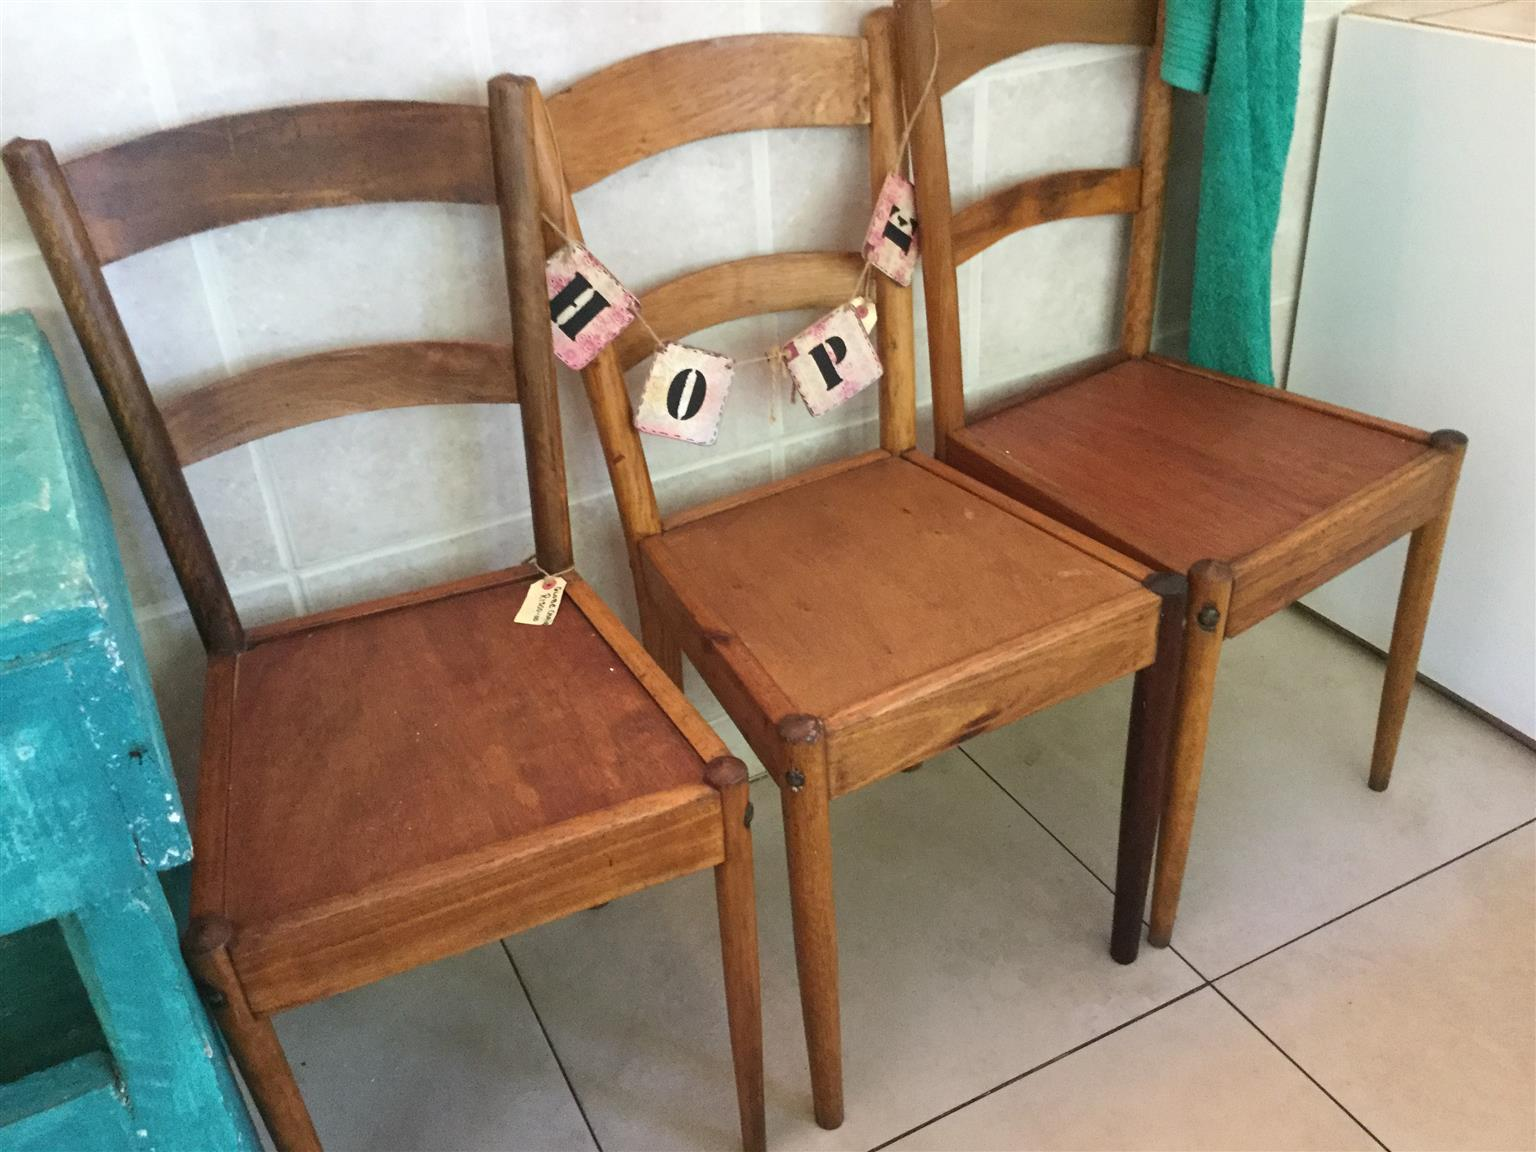 1920s superb GLOBE chairs sold each, have tightening patented under chair